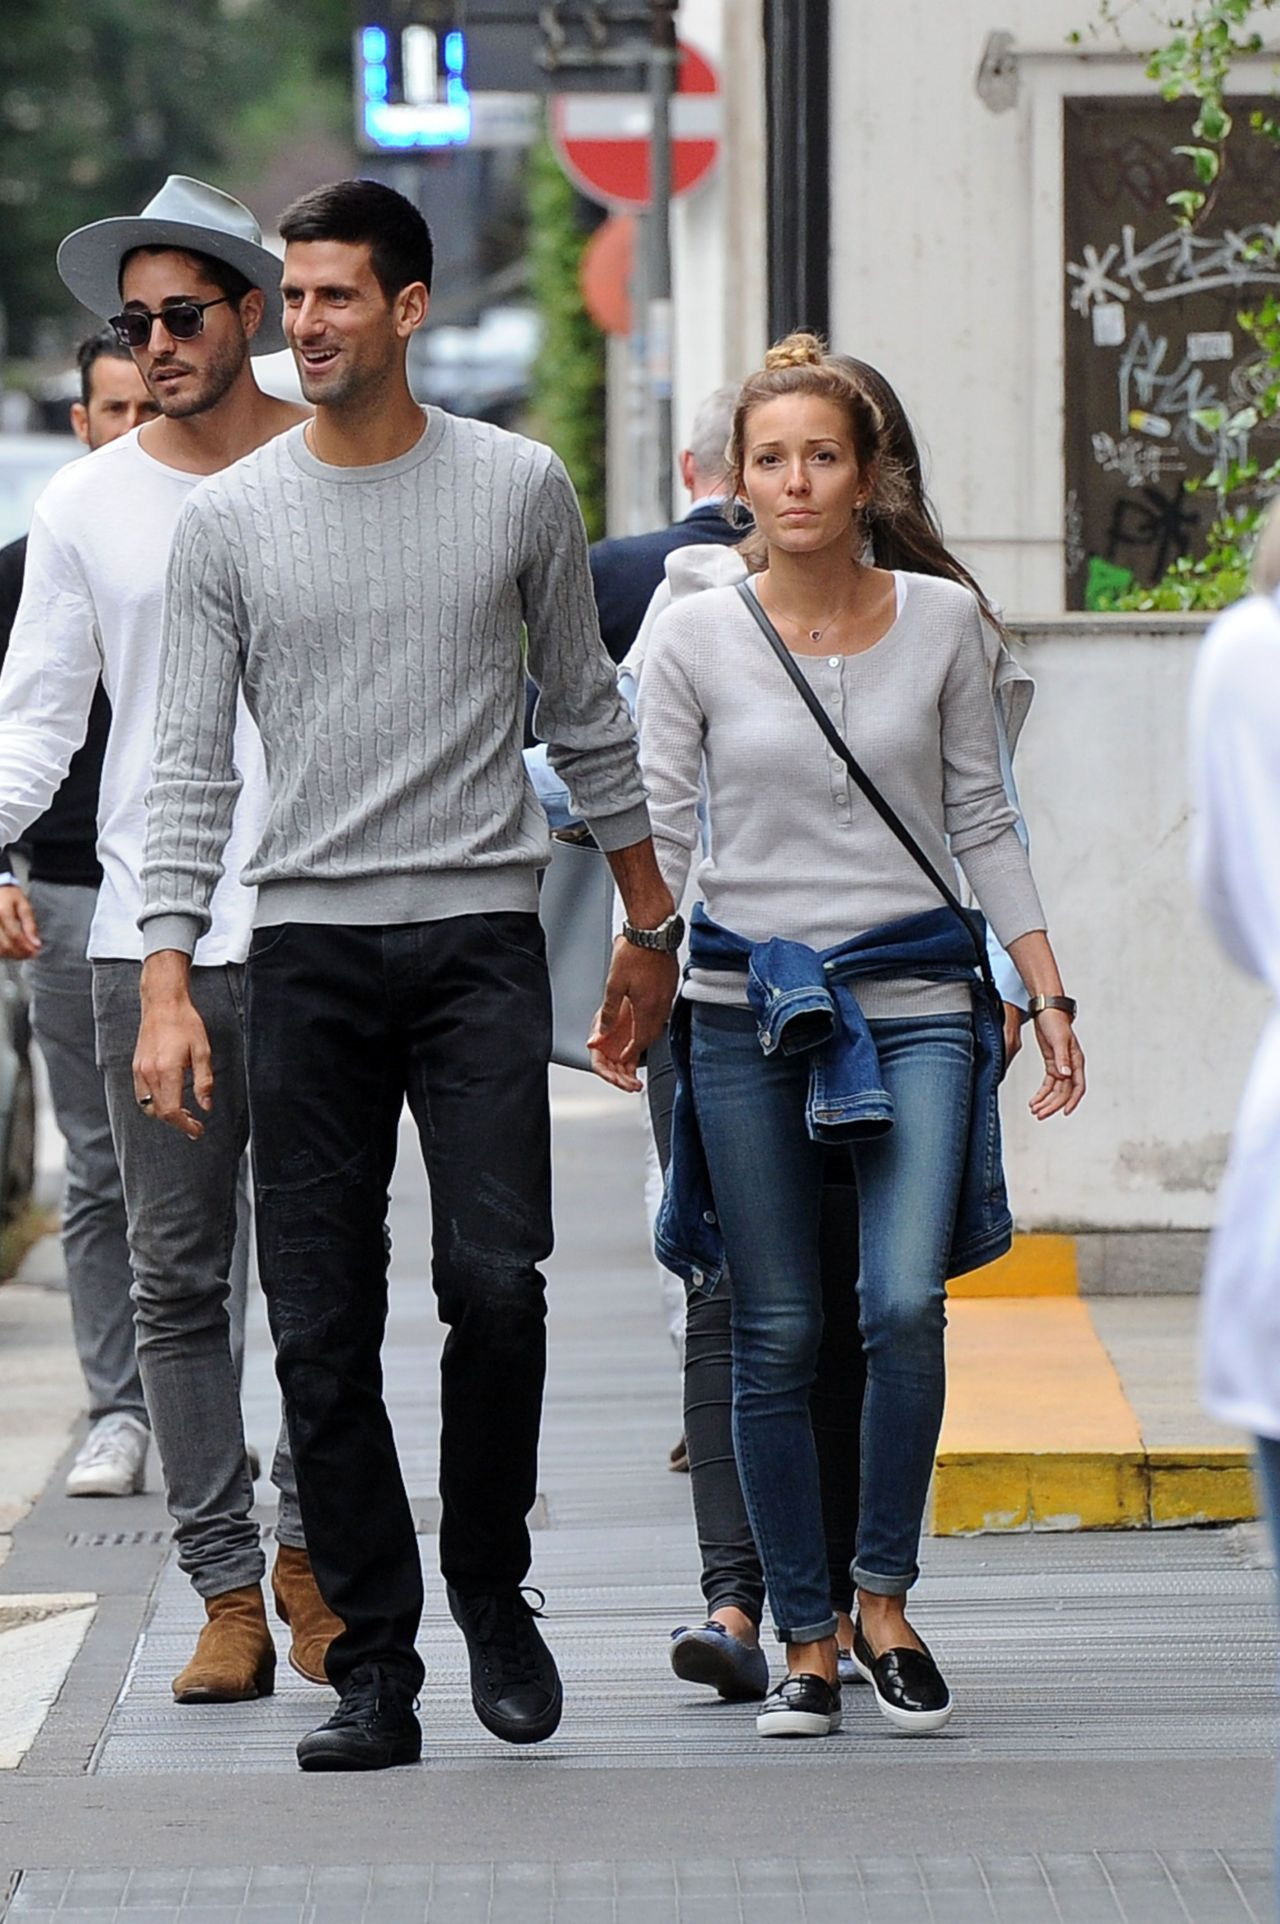 Jelena Djokovic with husband Novak Djokovic